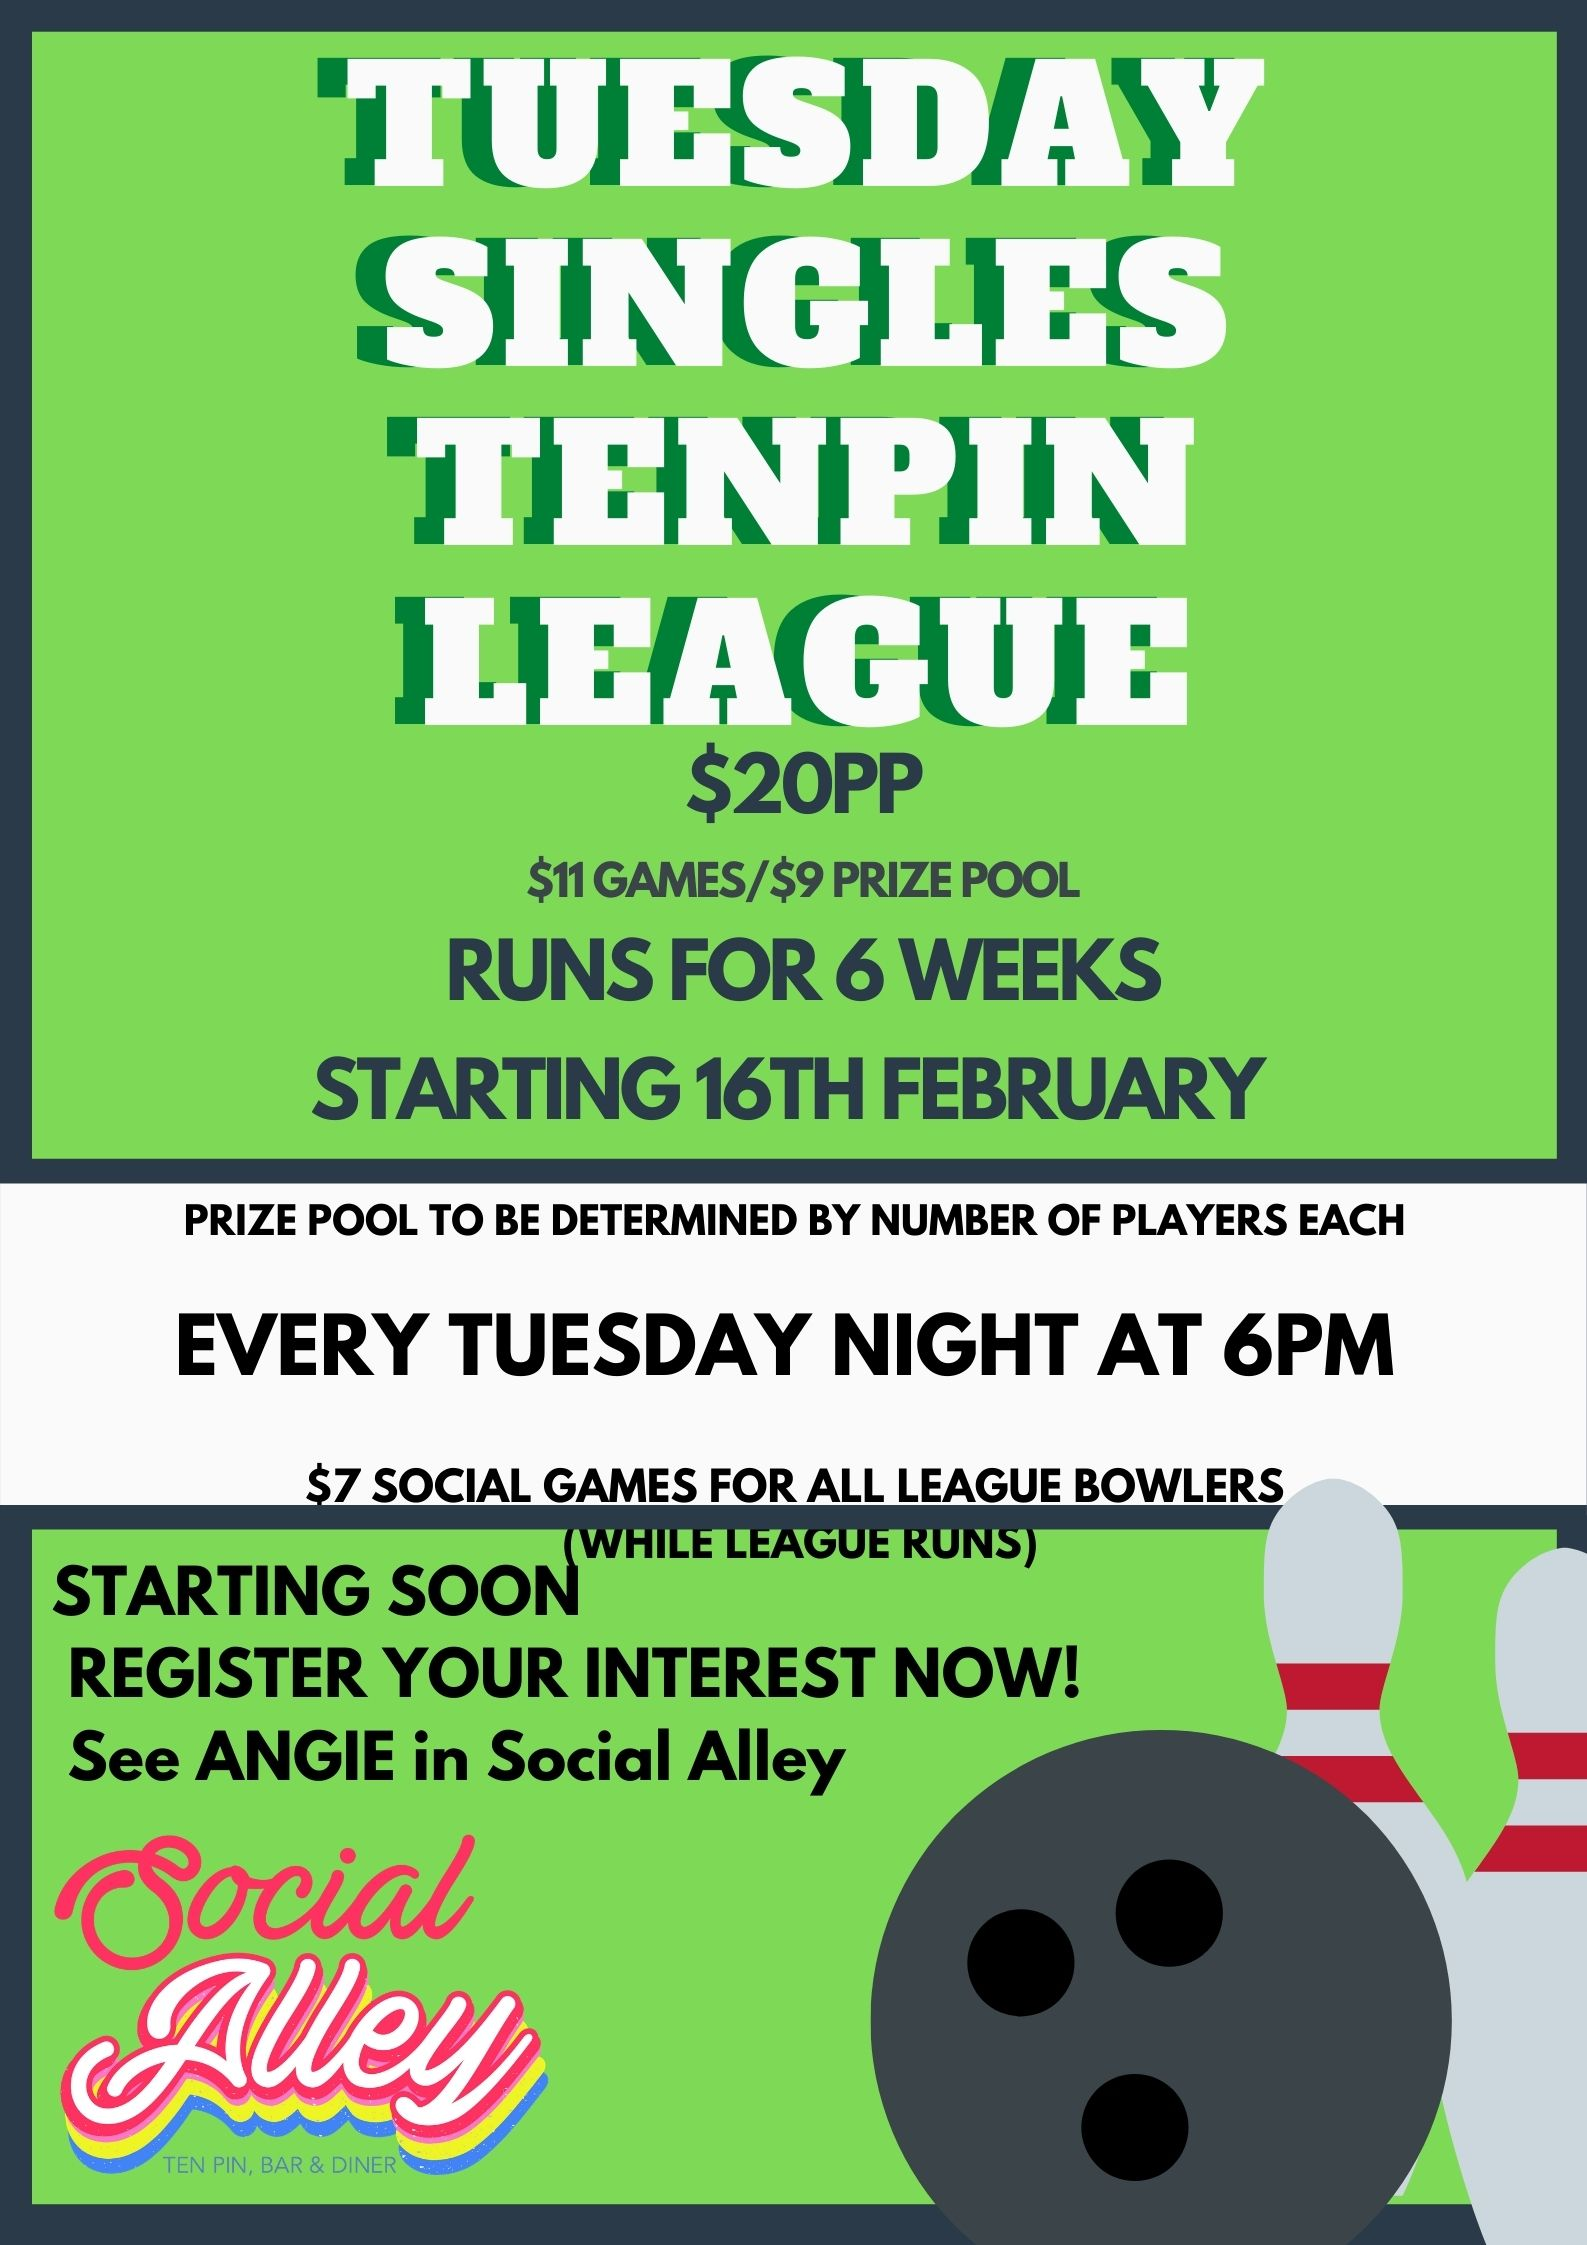 Social Alley - Tuesday Singles Tenpin league